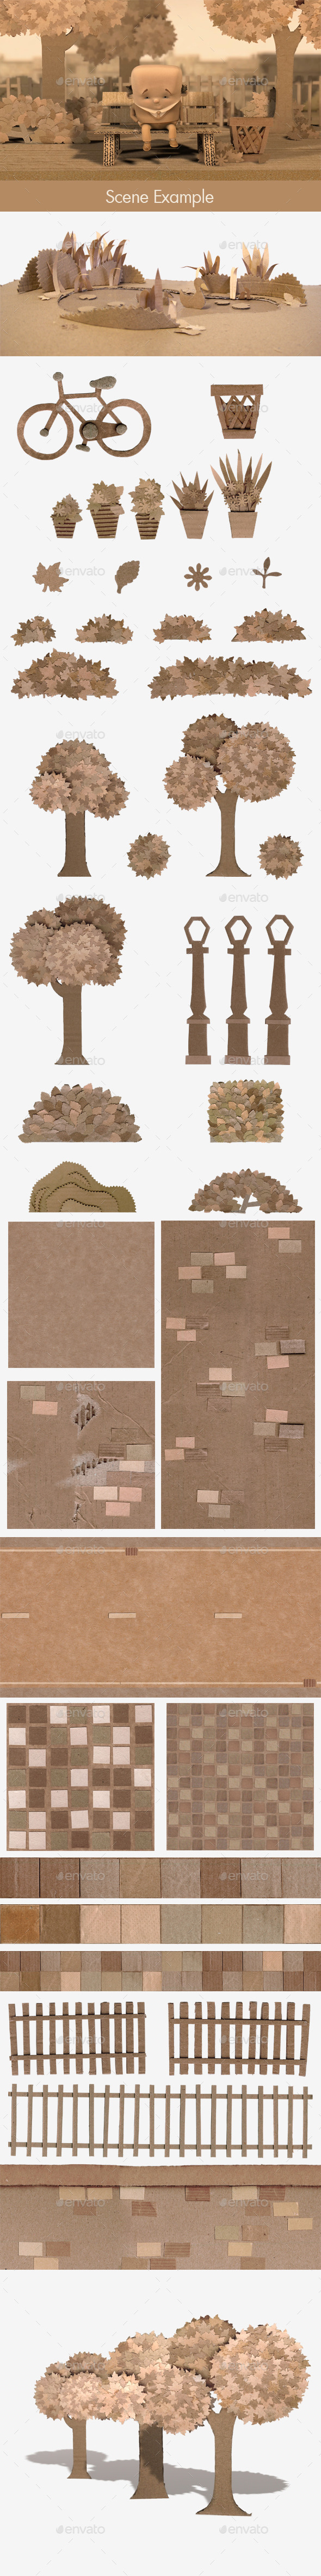 44 Handmade Cardboard City Scene Textures - 3DOcean Item for Sale